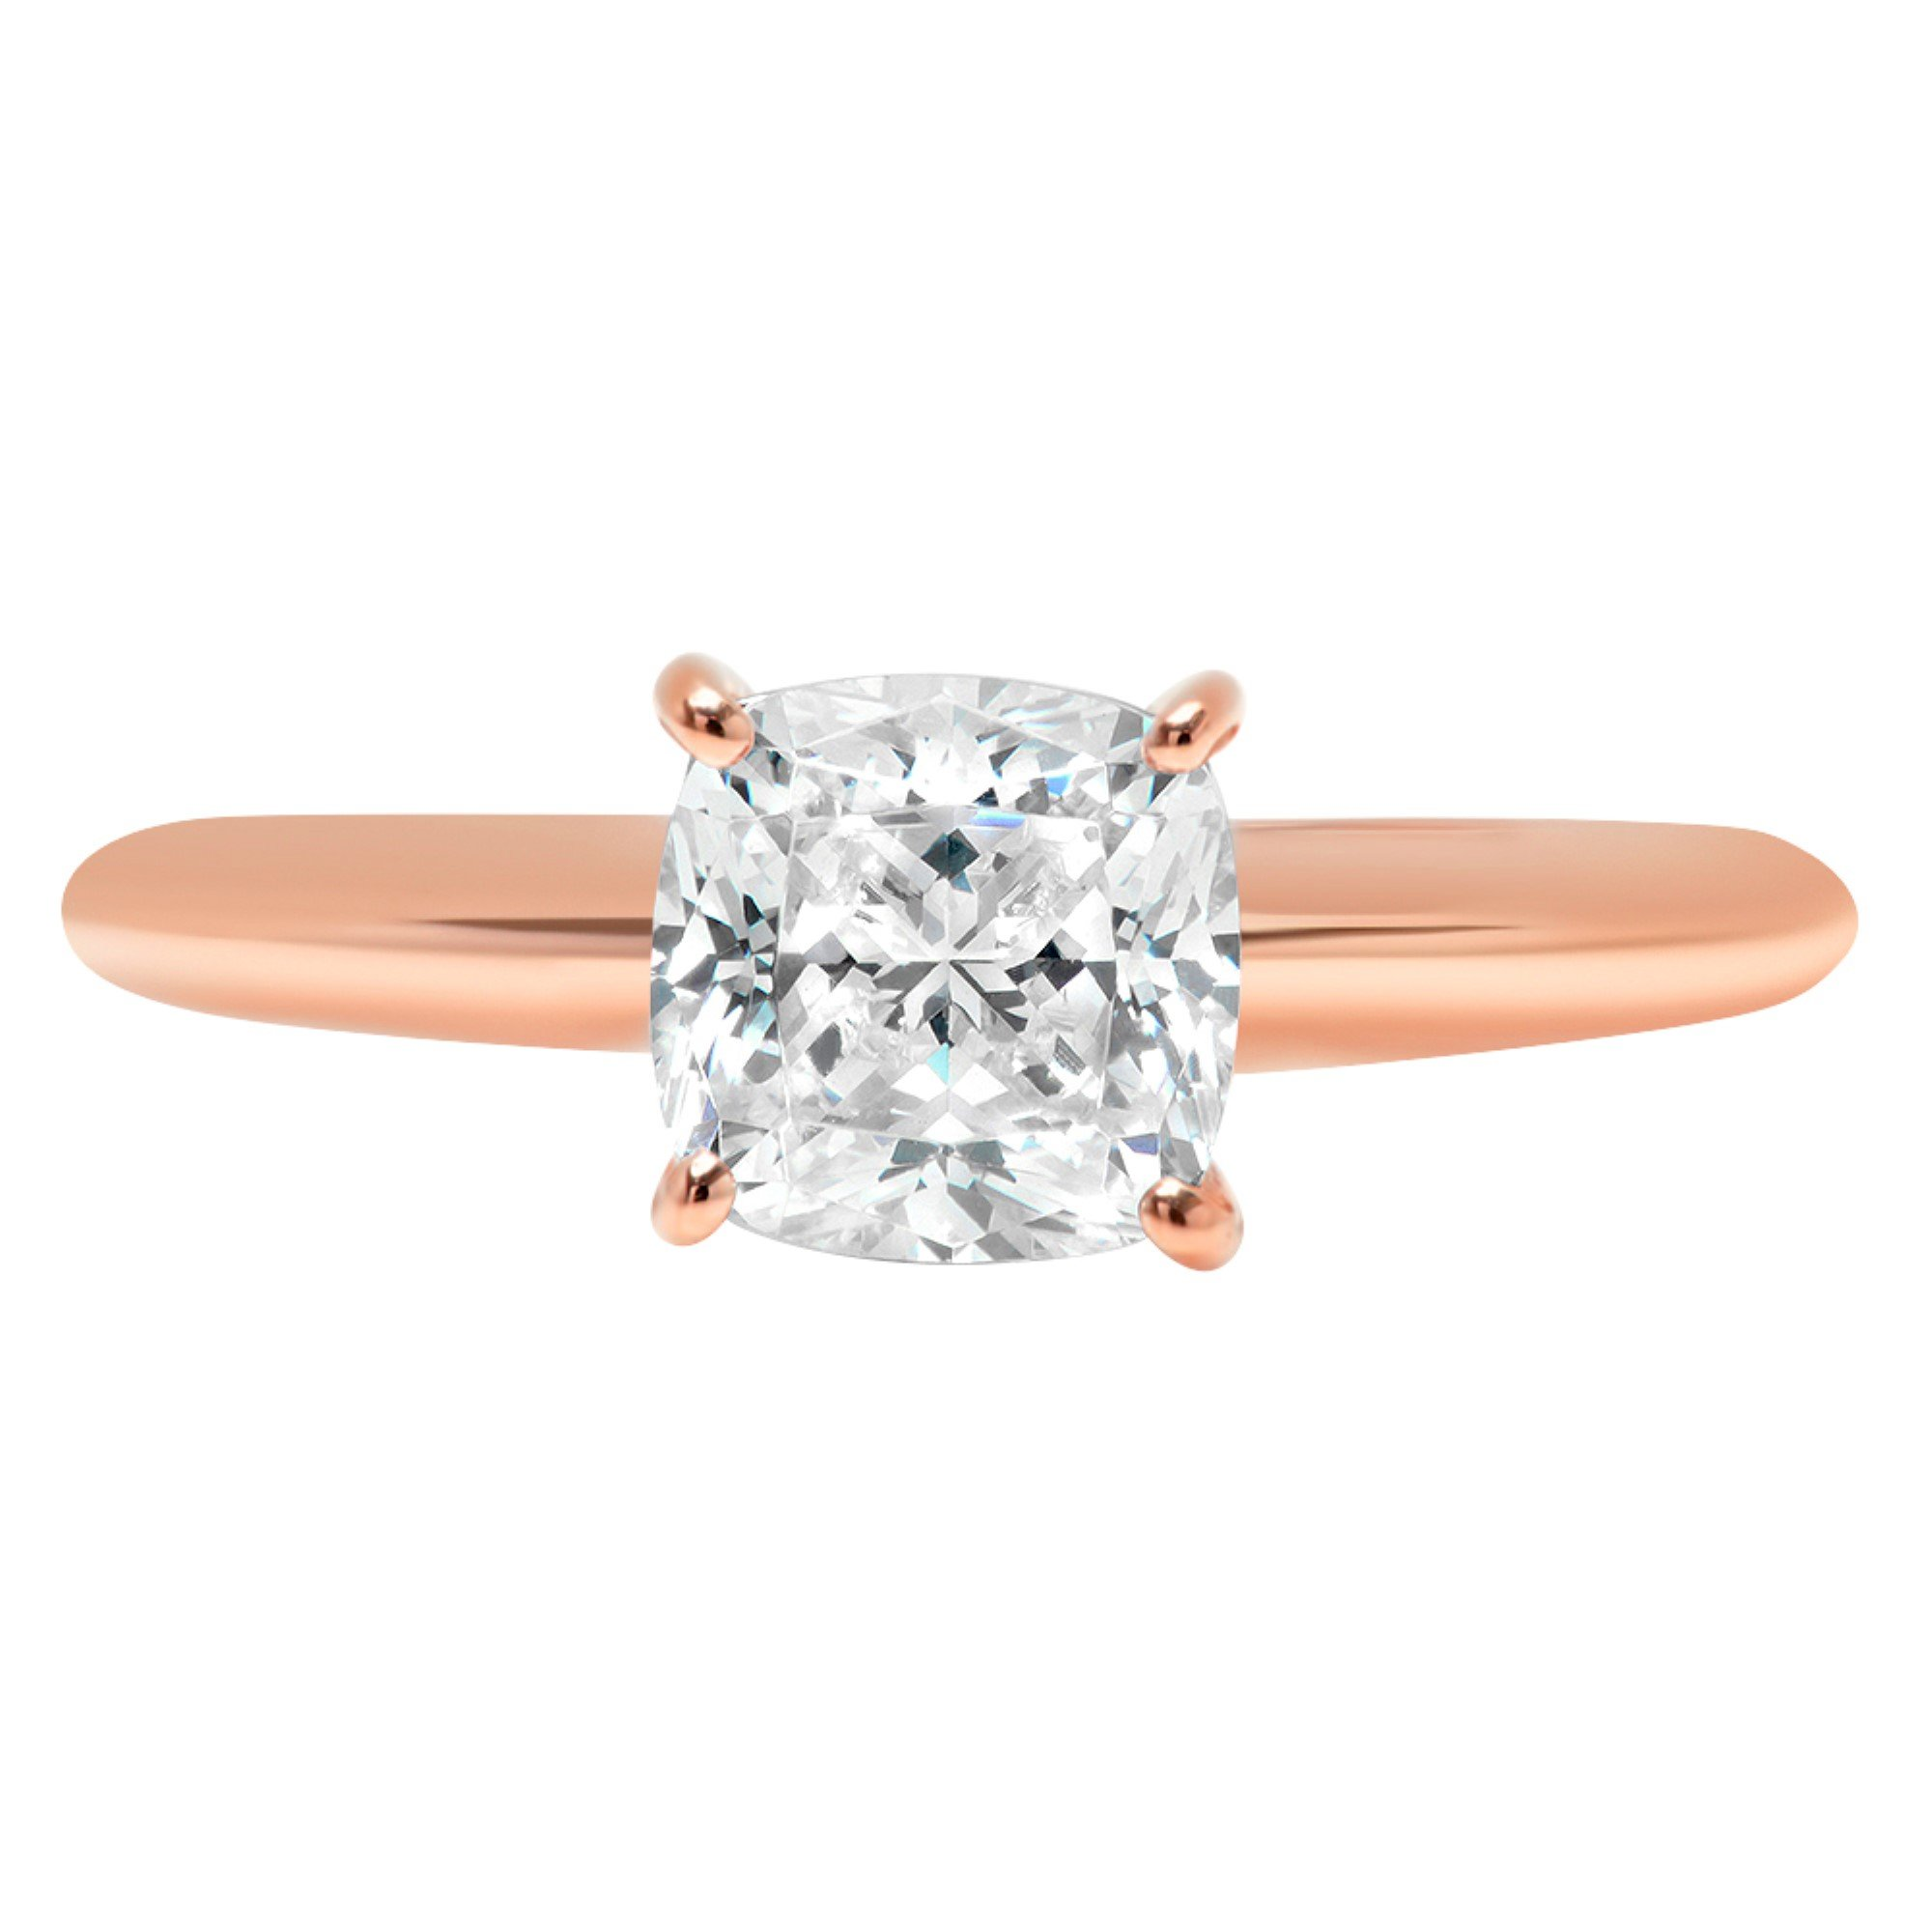 14k Rose Gold 2.3ct Cushion Brilliant Cut Classic Solitaire Designer Wedding Bridal Statement Anniversary Engagement Promise Ring Solid, 10, 10